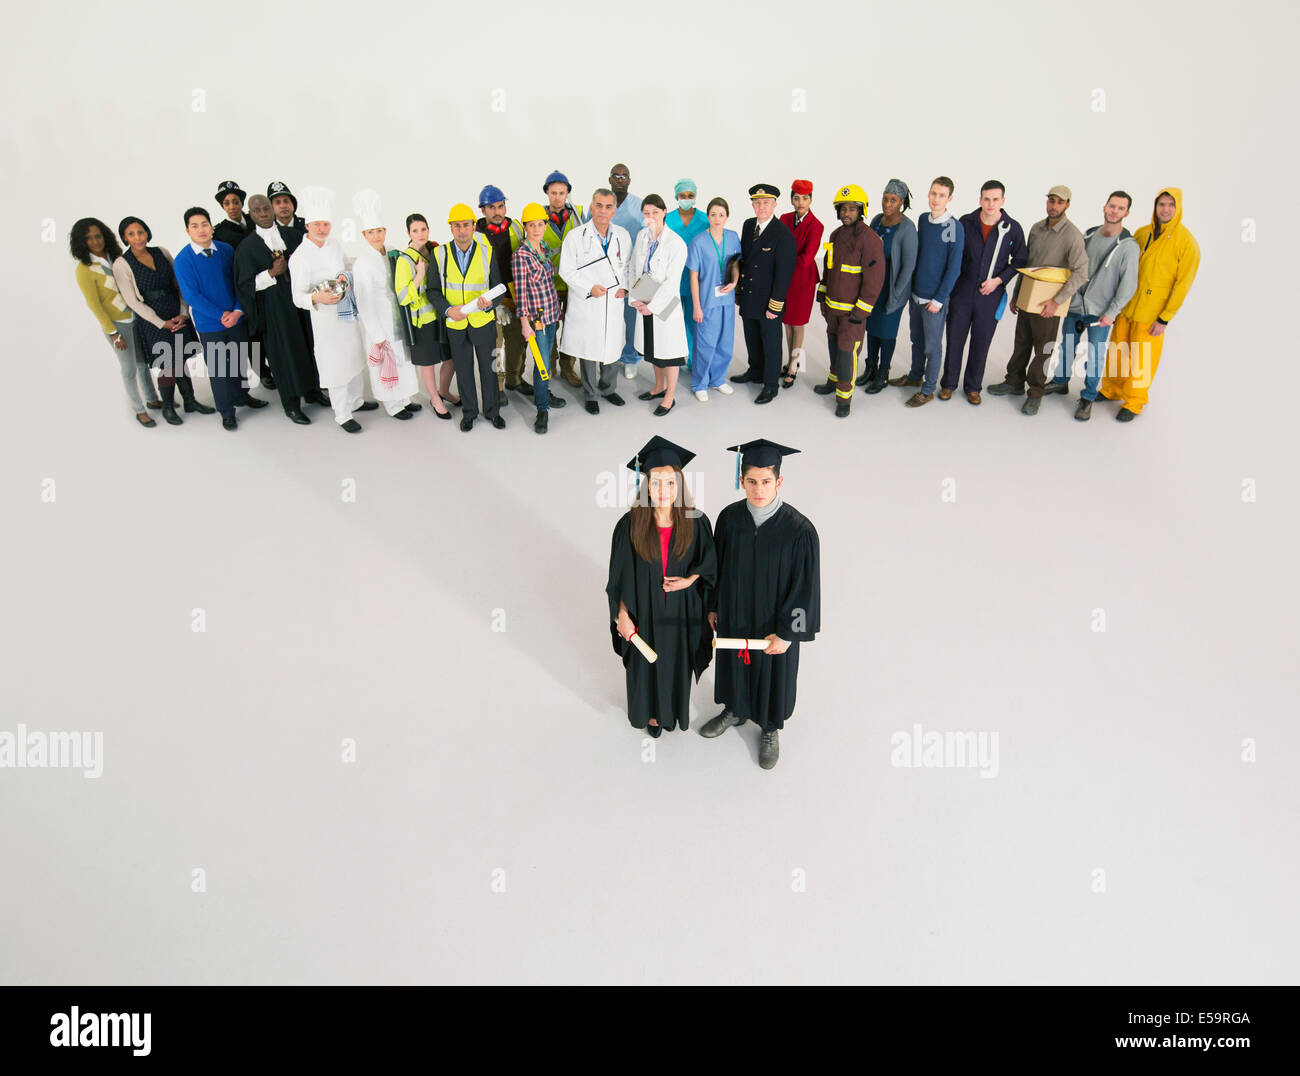 Portrait of graduates with workers in background - Stock Image